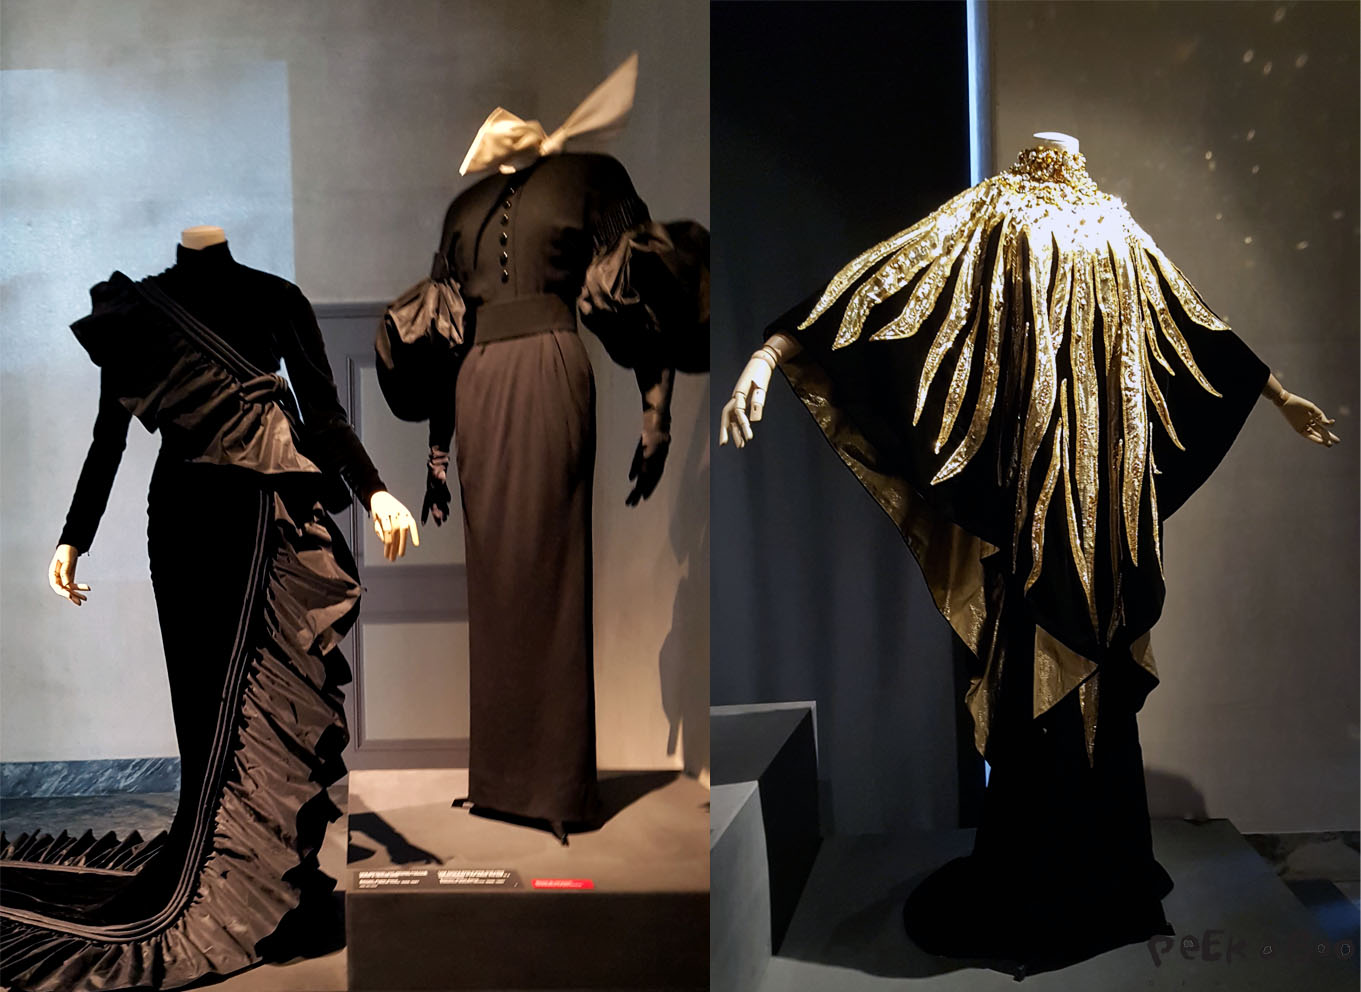 I am black Velvet, the exhibition at Designmuseum Danmark, that shows more than 100 dresses designed by Erik Mortensen.I am black Velvet, the exhibition at Designmuseum Danmark, that shows more than 100 dresses designed by Erik Mortensen.